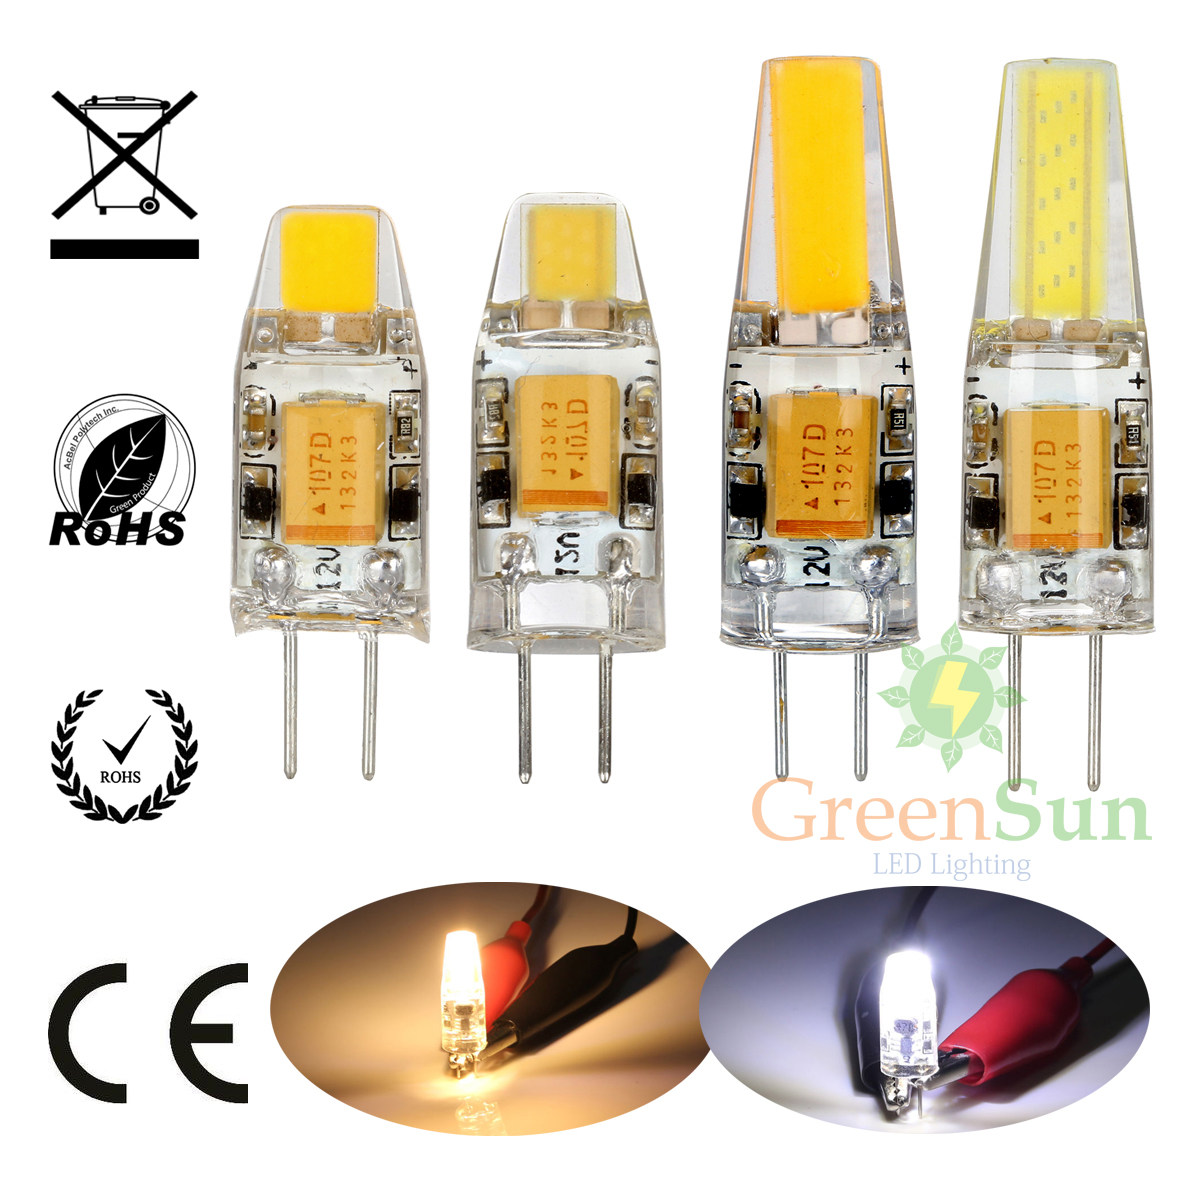 g4 g9 led cob lampe licht stiftsockel birne leuchtmittel dimmbar 12v ebay. Black Bedroom Furniture Sets. Home Design Ideas